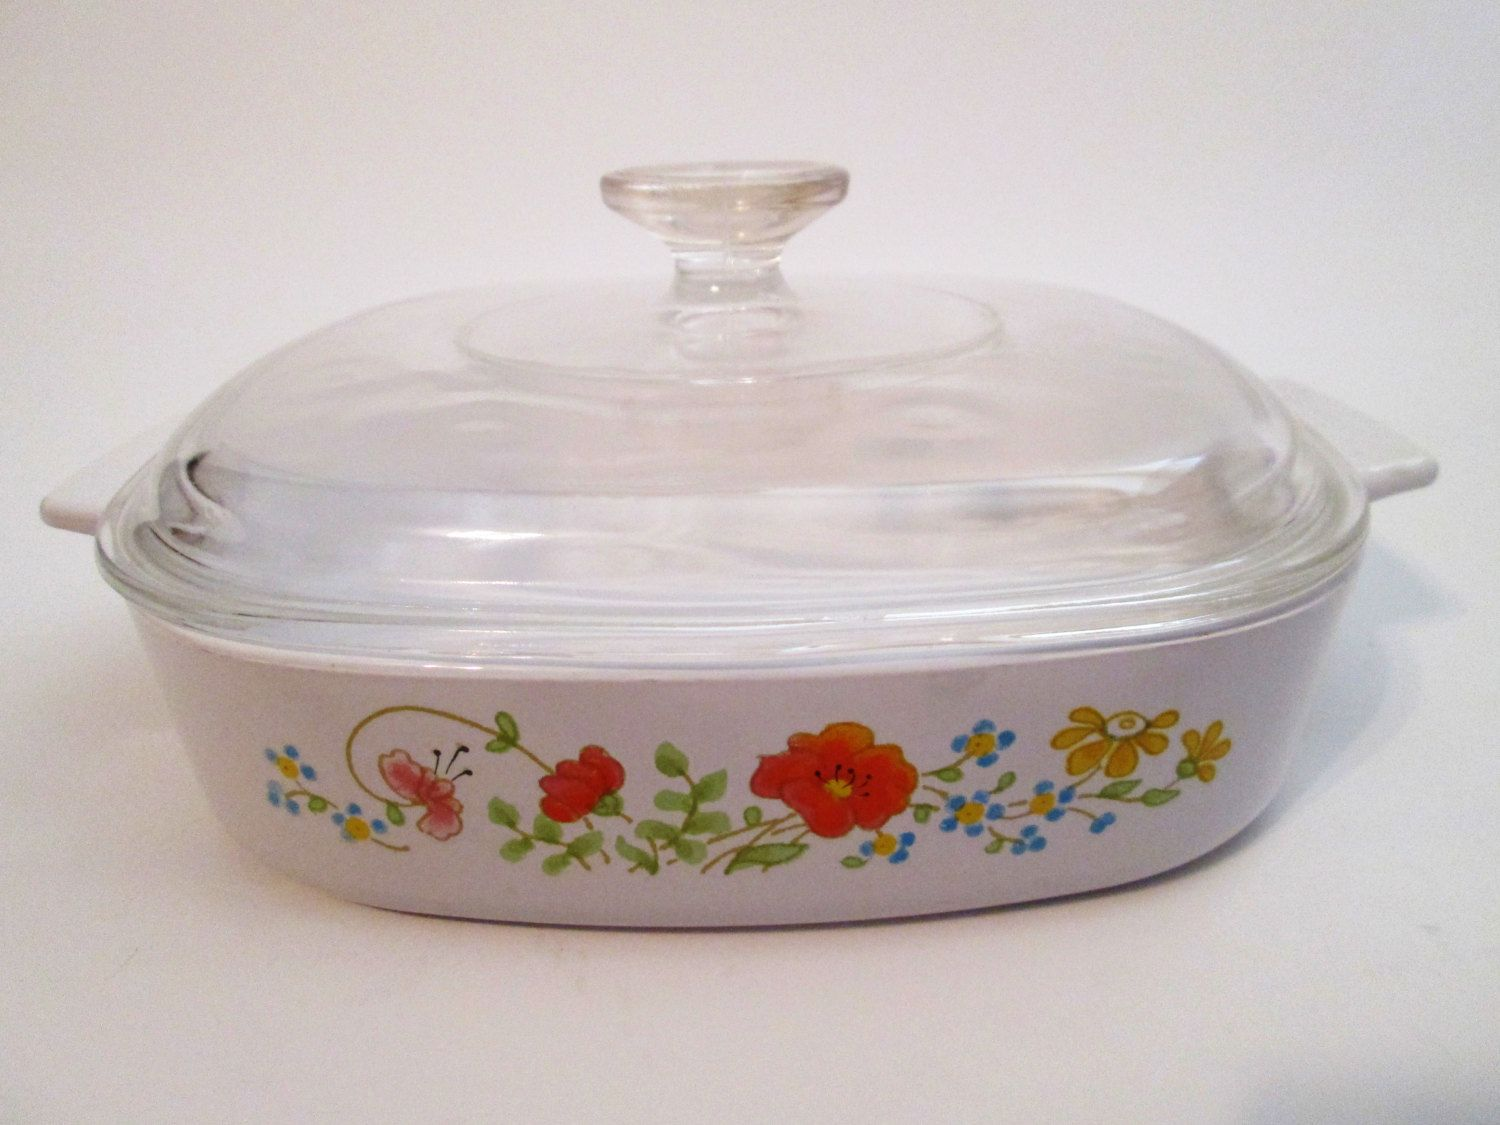 Vintage Corning Ware Casserole Dish A 8 B With Lid Wildflower